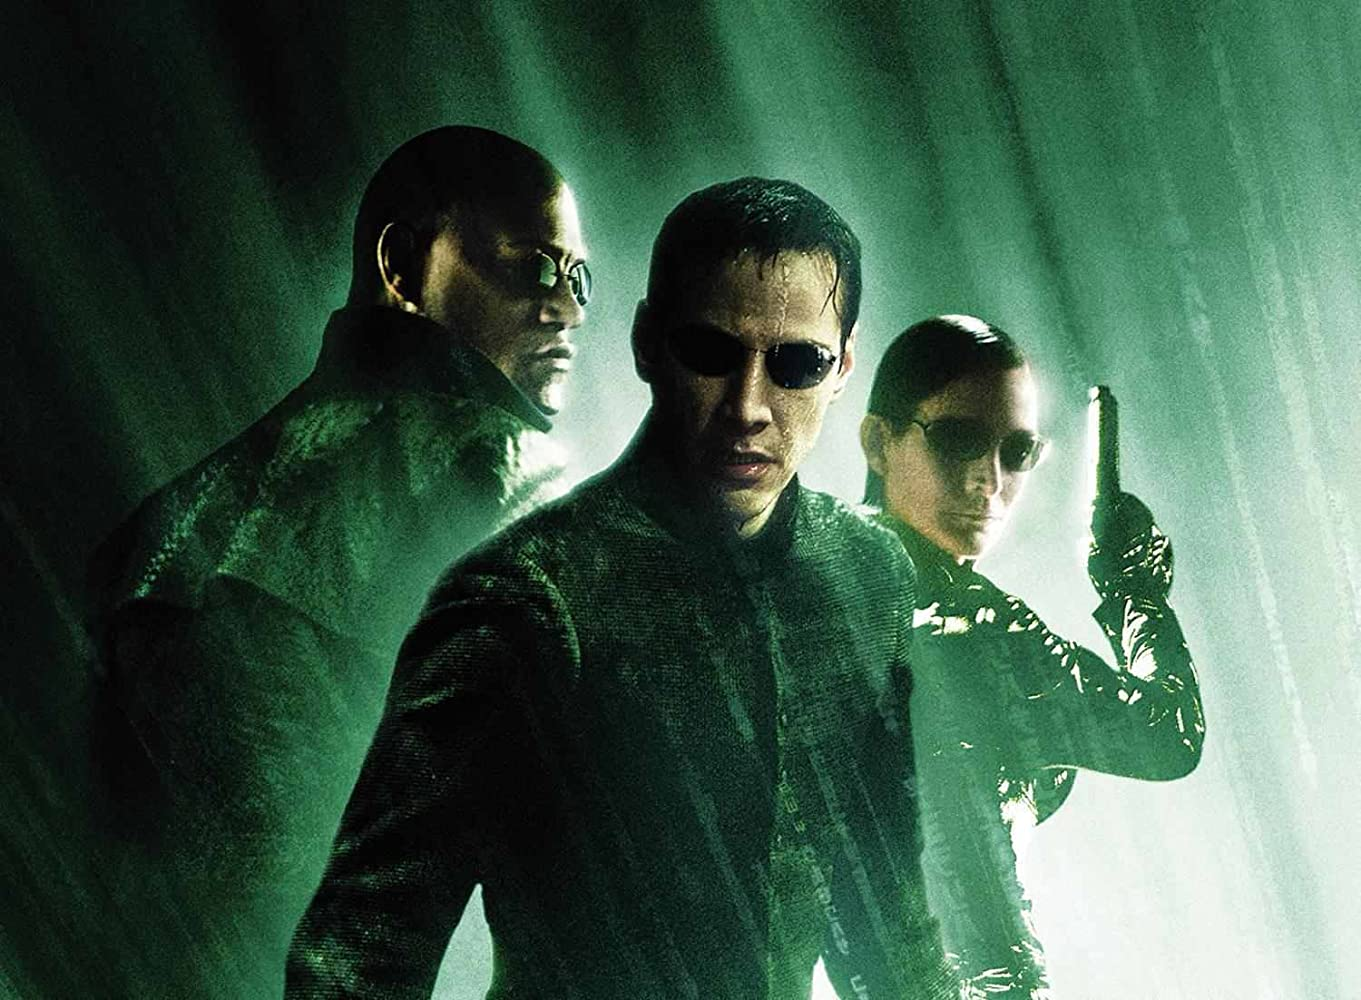 dualism and the matrix The matrix as a buddhist film the influence of buddhism on the matrix is just as strong as that of christianity indeed, some basic philosophical premises that drive major plot points would be nearly incomprehensible without a little background understanding of buddhism and buddhist doctrines.